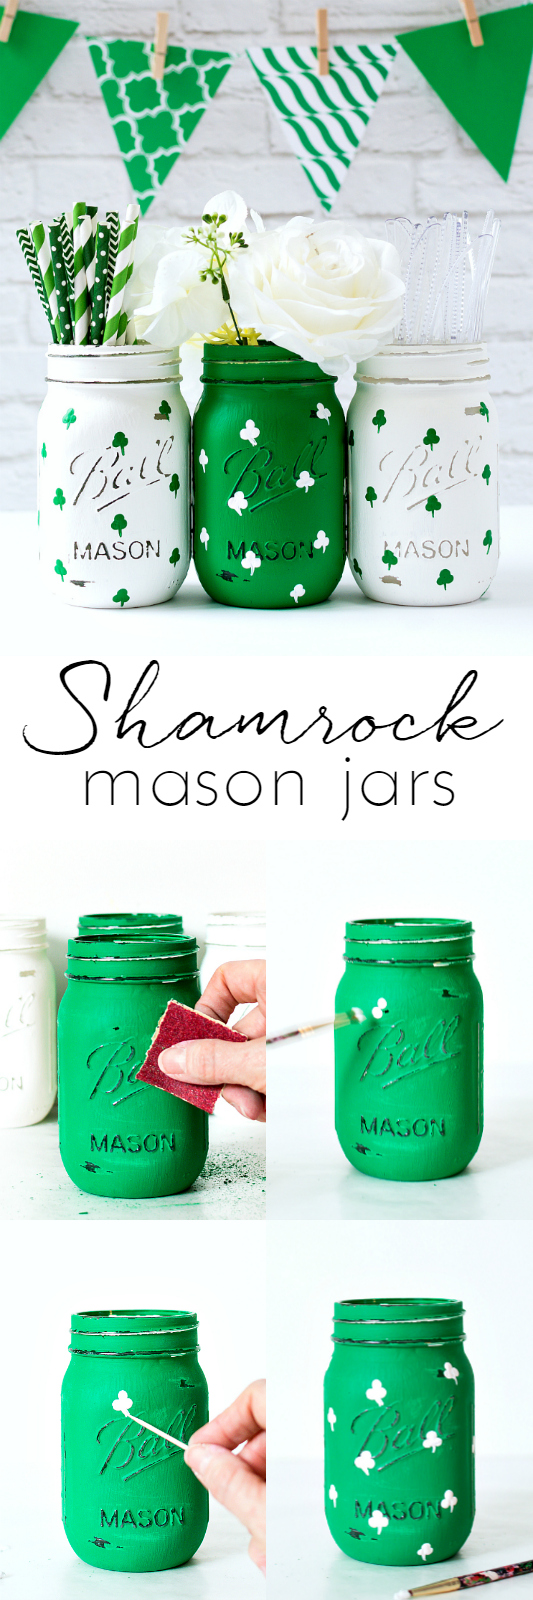 Shamrock Mason Jars - St. Patrick's Day Craft Ideas with Mason Jars www.masonjarcraftslove.com